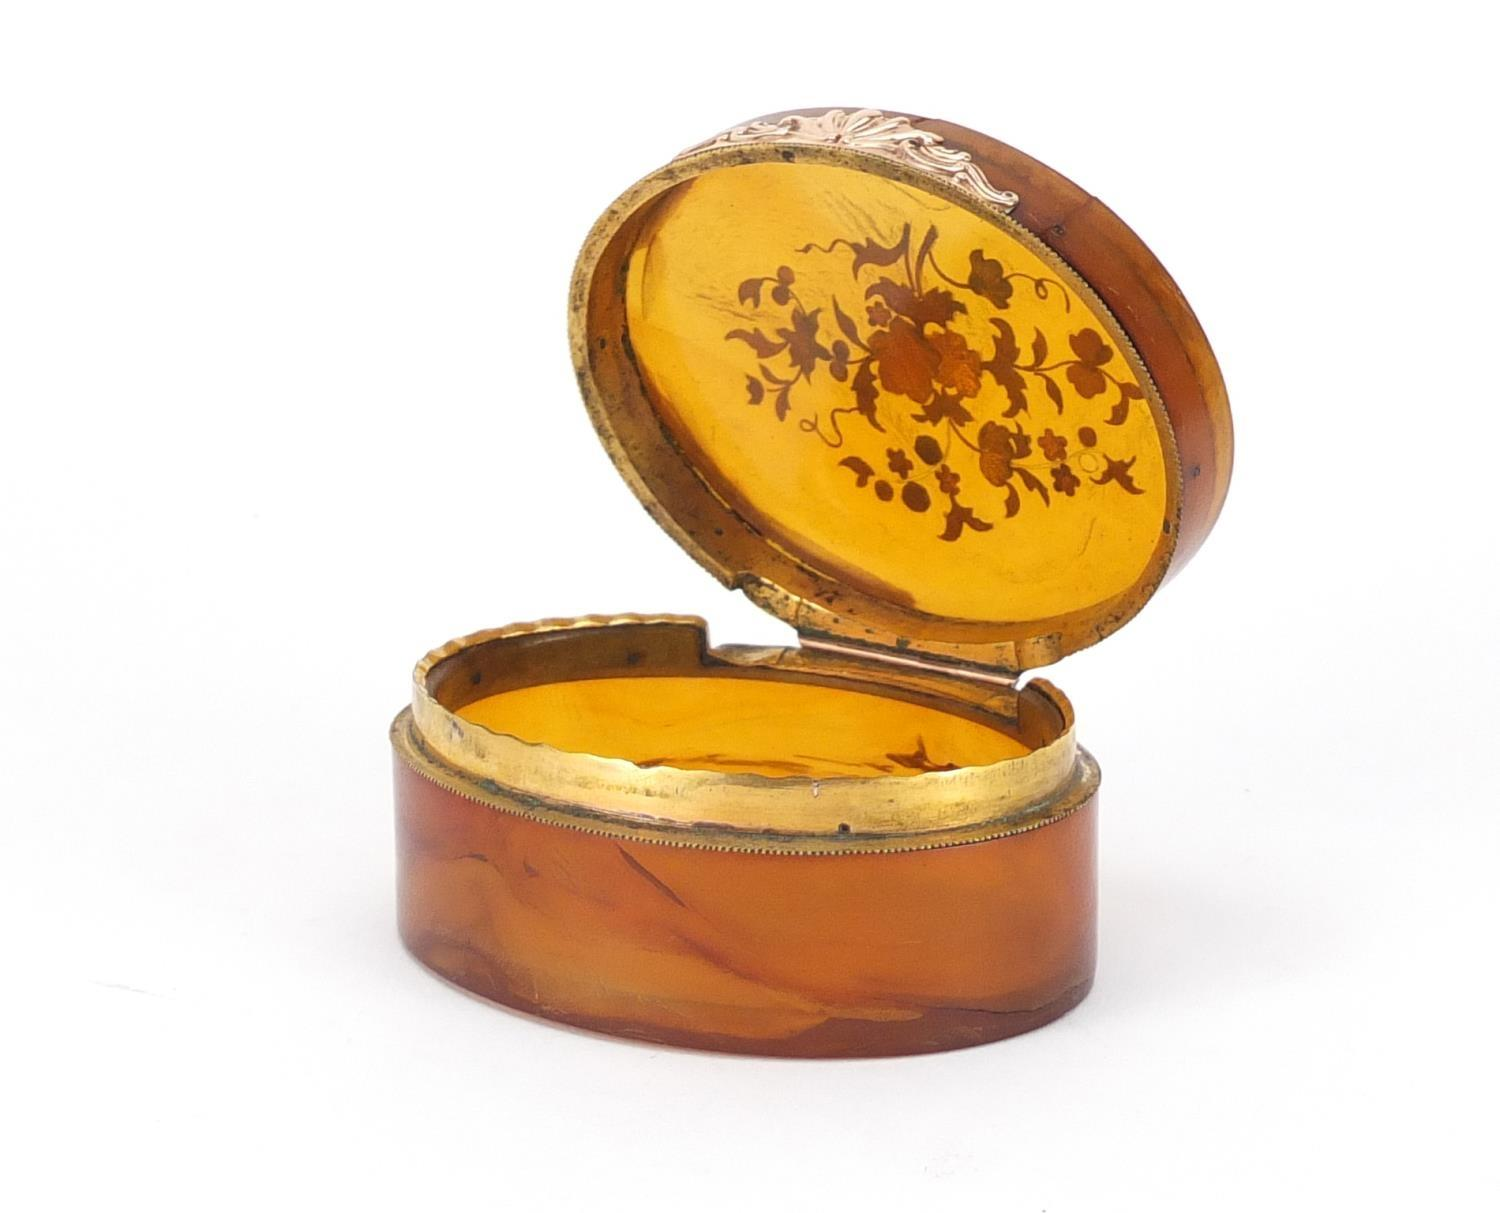 Lot 47 - 18th century horn and piqué work oval snuff box, the hinged lid decorated with flowers, 9cm wide :